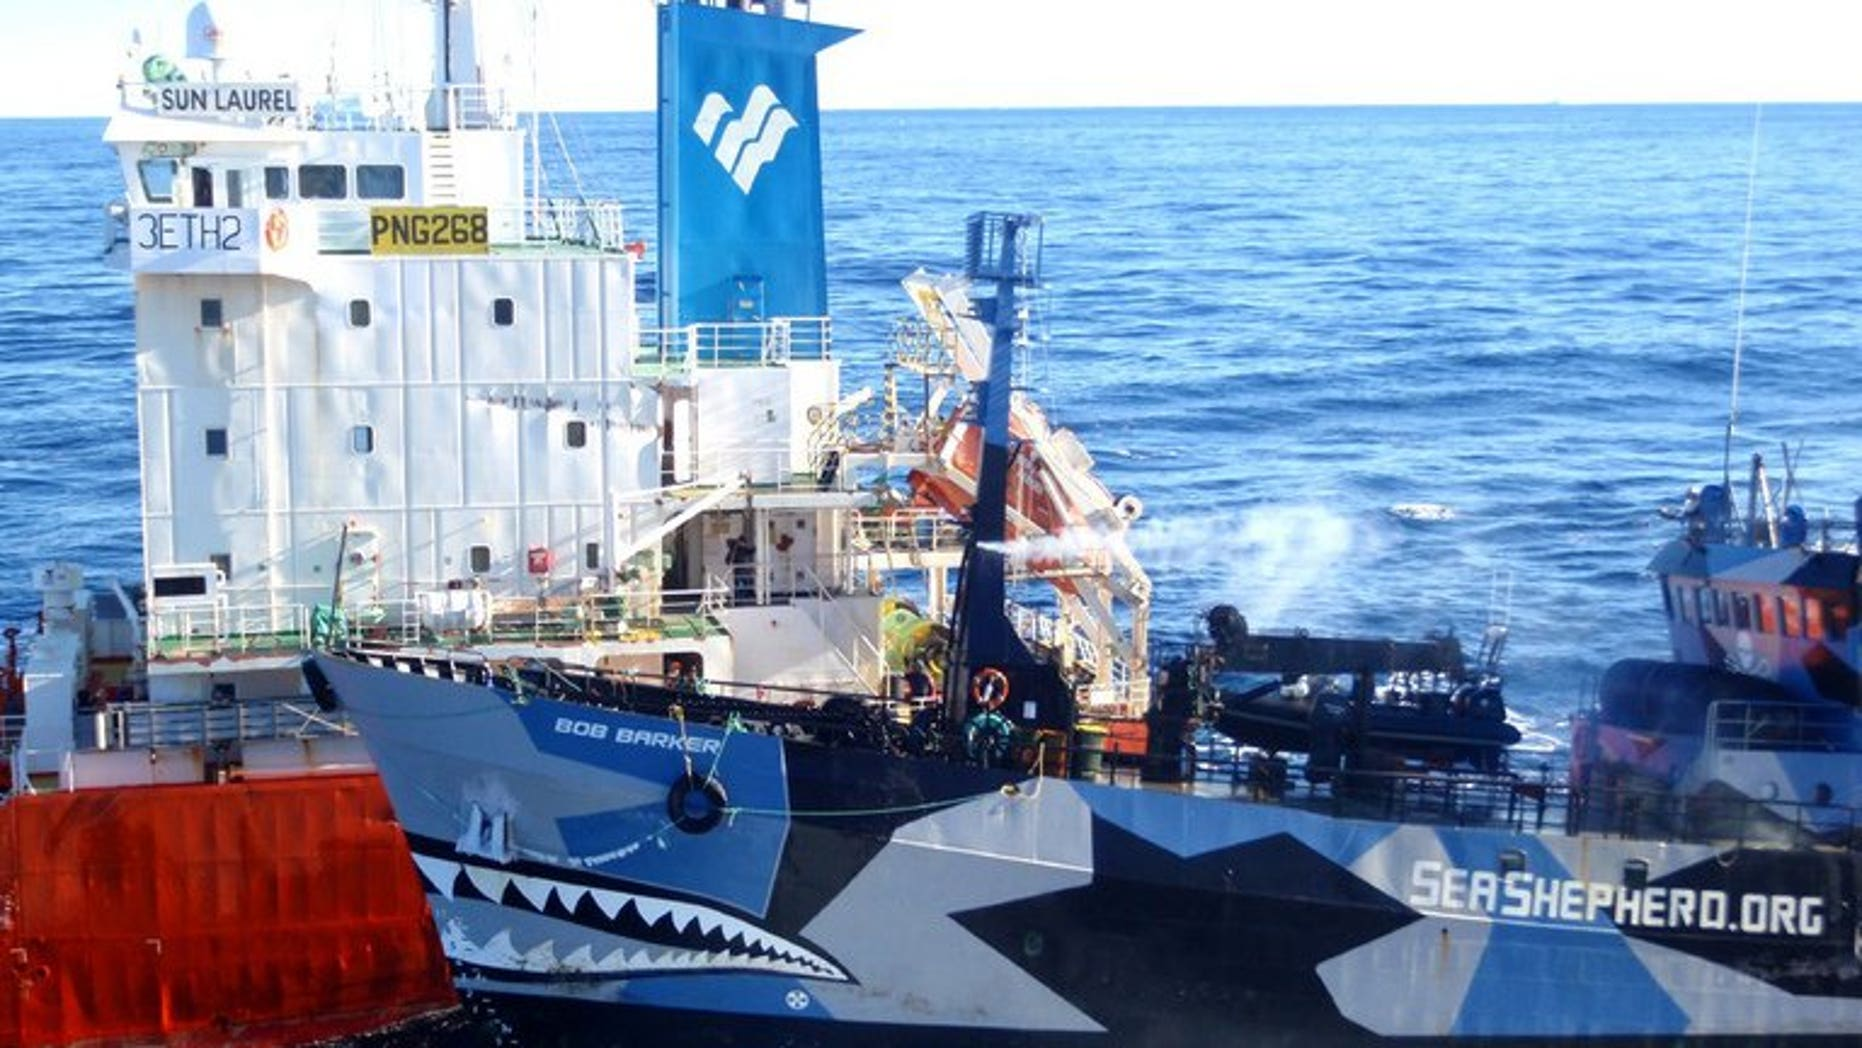 A Sea Shepherd ship (R) collides with a Japanese whaling fleet fuel tanker on February 25, 2013. Militant anti-whaling organisation Sea Shepherd Australia suffered a blow to its fundraising hopes when a court rejected a bid for donations to be tax-deductible.